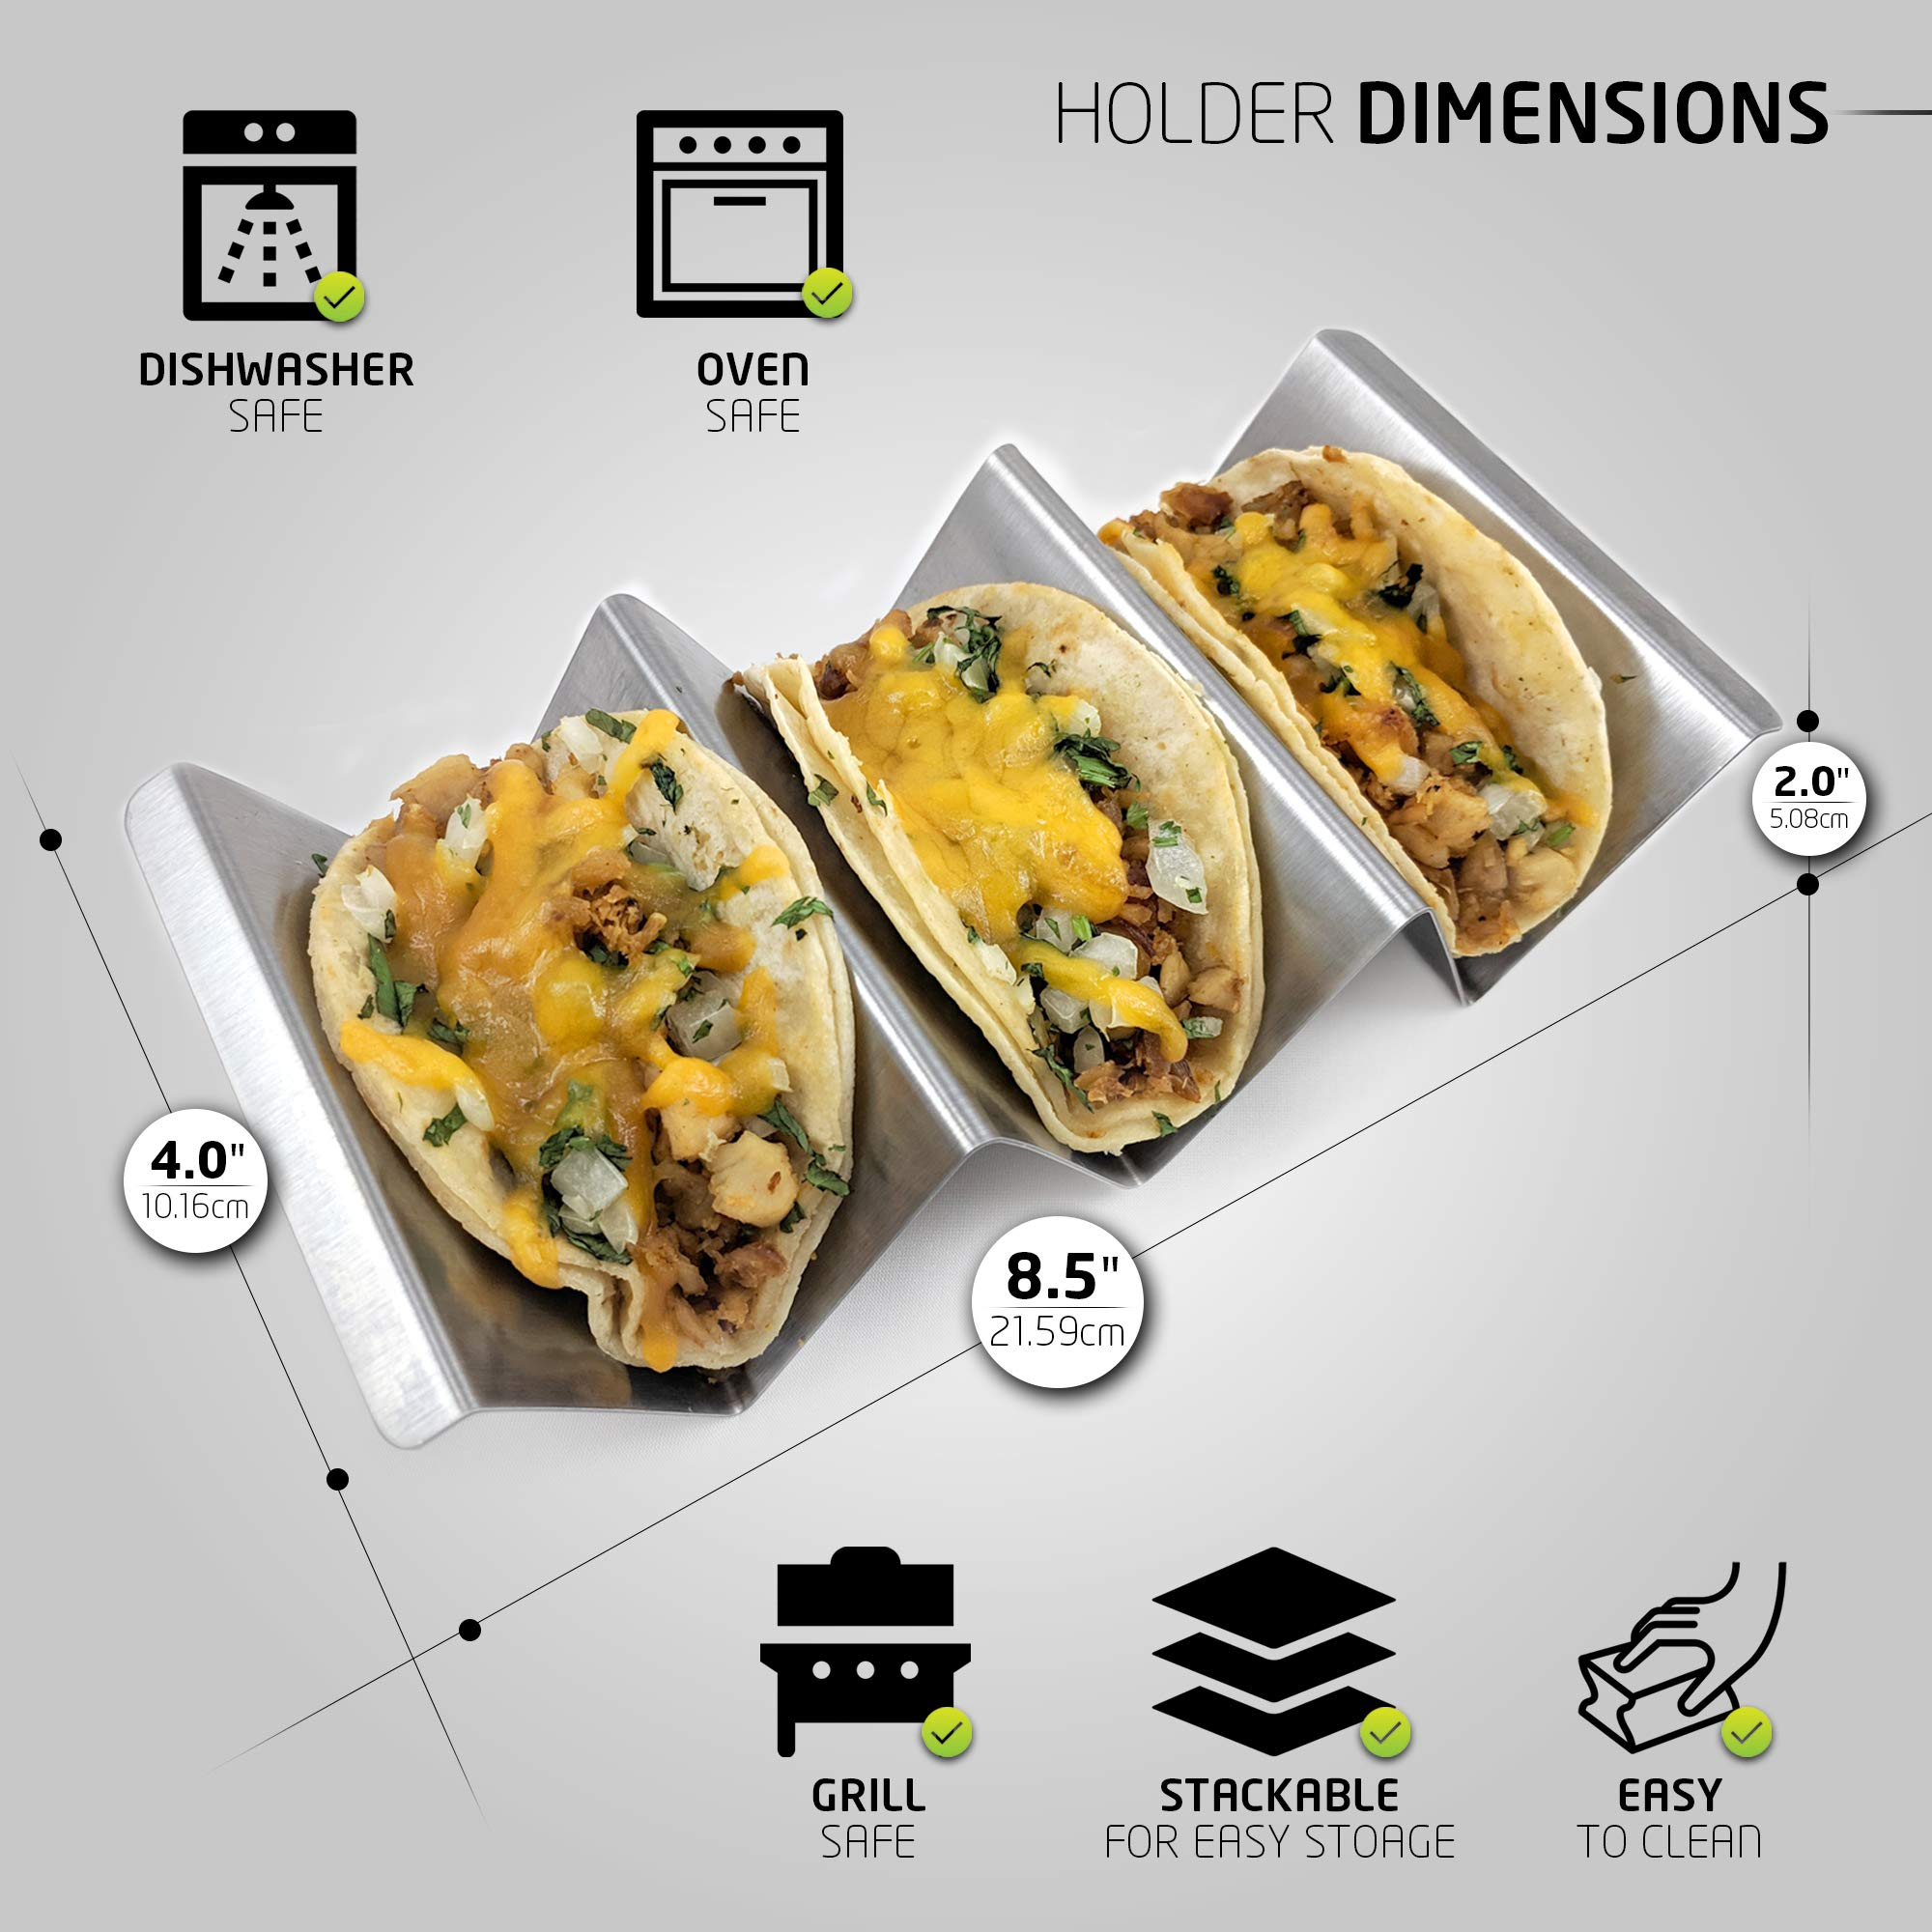 Taco Holder with Handles- Stainless Steel- Set of 6- Stand up 2-3 Tacos/Tortillas – Easy to Fill and Store- Dishwasher & Oven safe- Zamena Designs by Zamena Designs (Image #3)